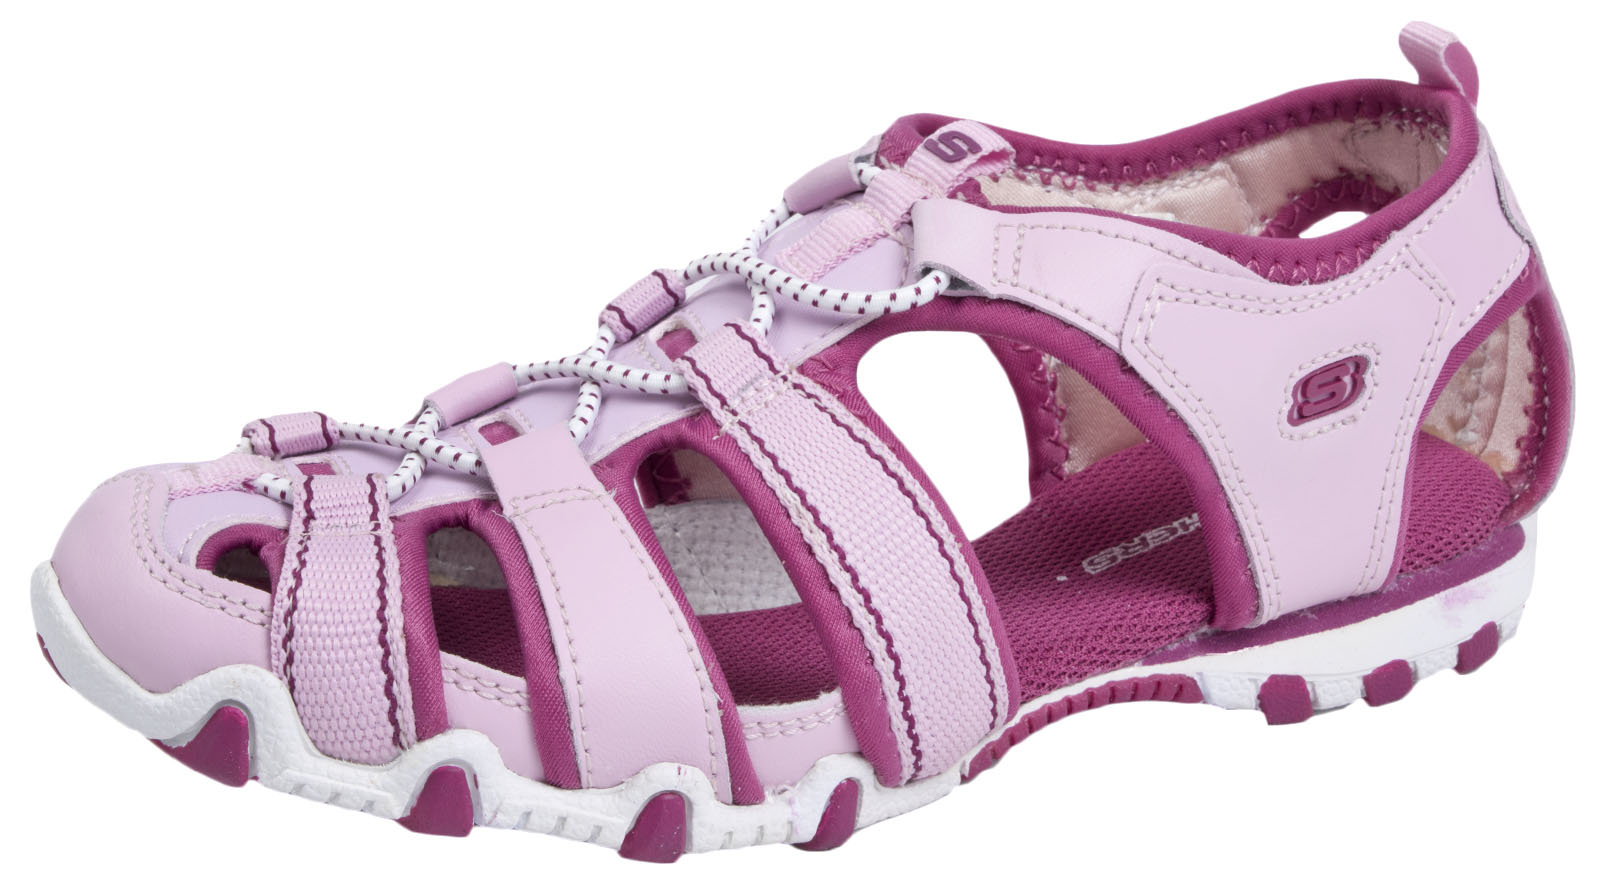 f2454a9ac6fb Skechers Girls Sports Sandals Elasticated Summer Holiday Beach Shoes Kids  Size